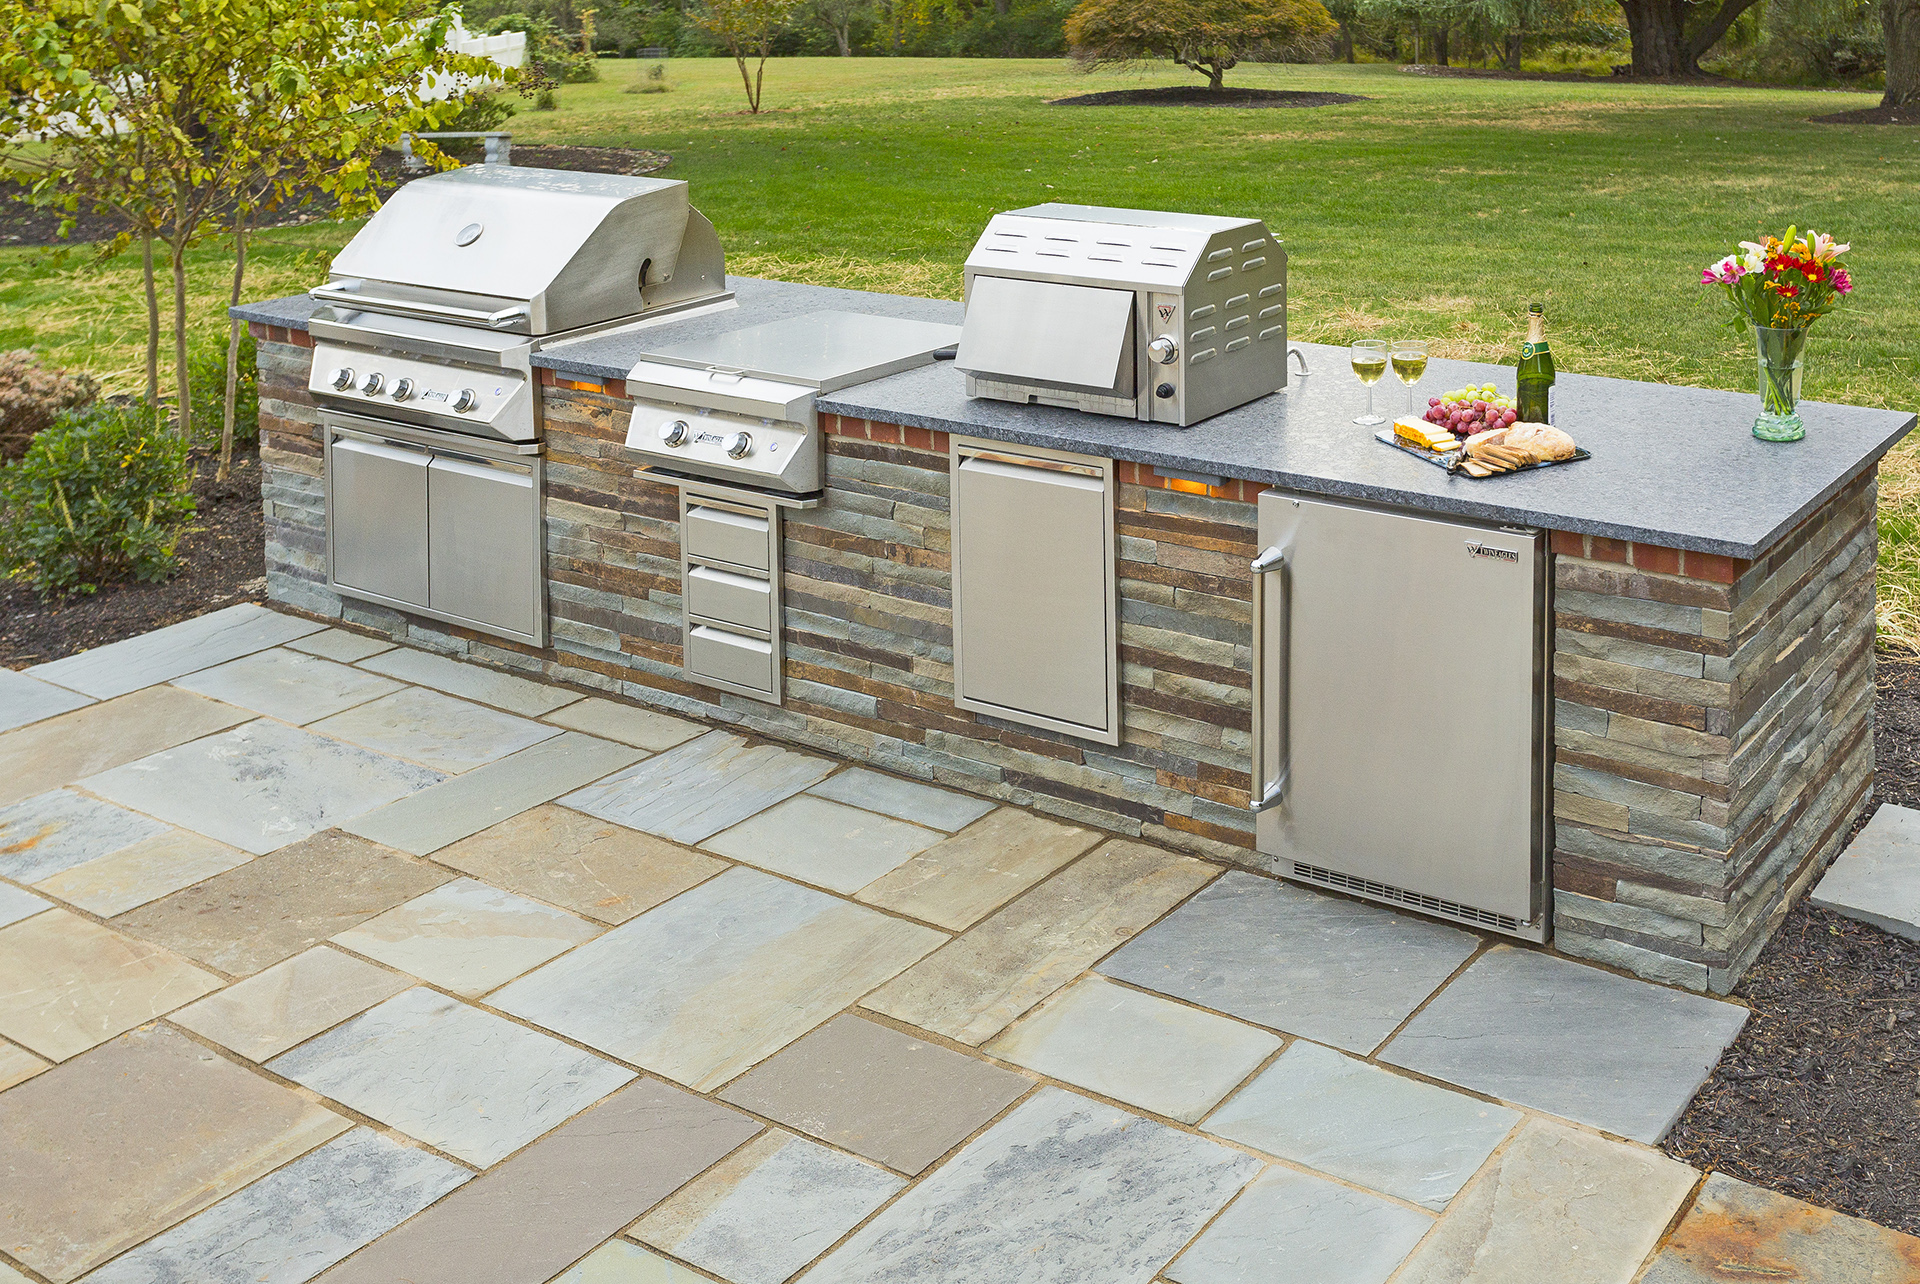 Farinola - West Chester, PA 19382 - Outdoor Kitchen by DiSabatino Landscaping & Esposito Masonry